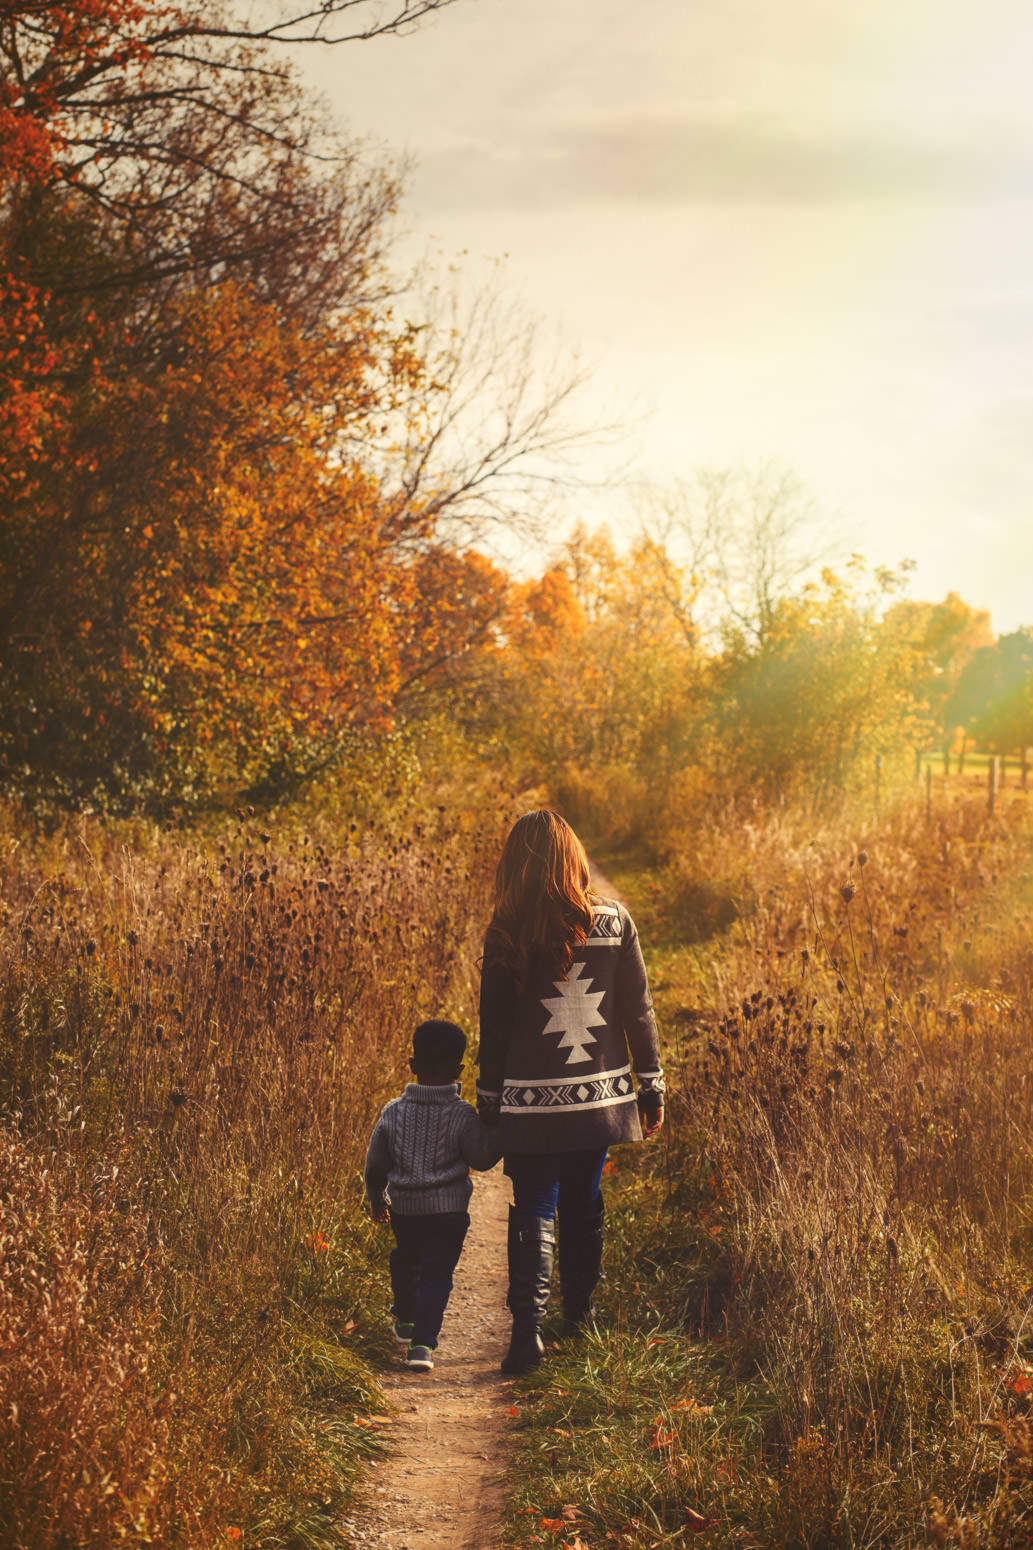 mother and son walking together holding hands in field